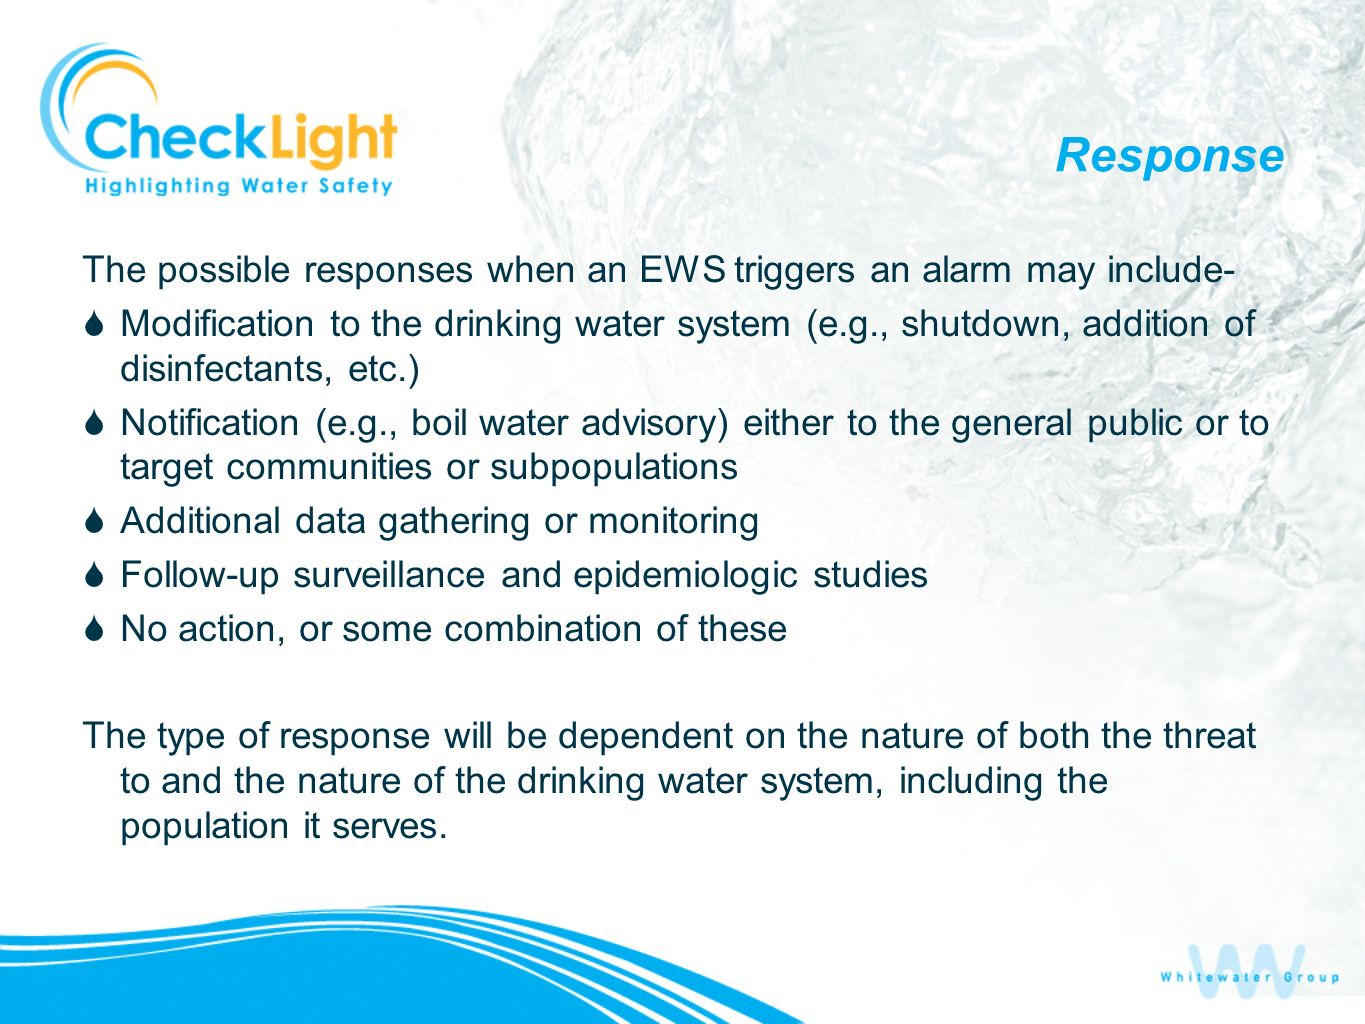 Response The possible responses when an EWS triggers an alarm may include- Modification to the drinking water system (e.g., shutdown, addition of disinfectants, etc.) Notification (e.g., boil water advisory) either to the general public or to target communities or subpopulations Additional data gathering or monitoring Follow-up surveillance and epidemiologic studies No action, or some combination of these The type of response will be dependent on the nature of both the threat to and the nature of the drinking water system, including the population it serves.